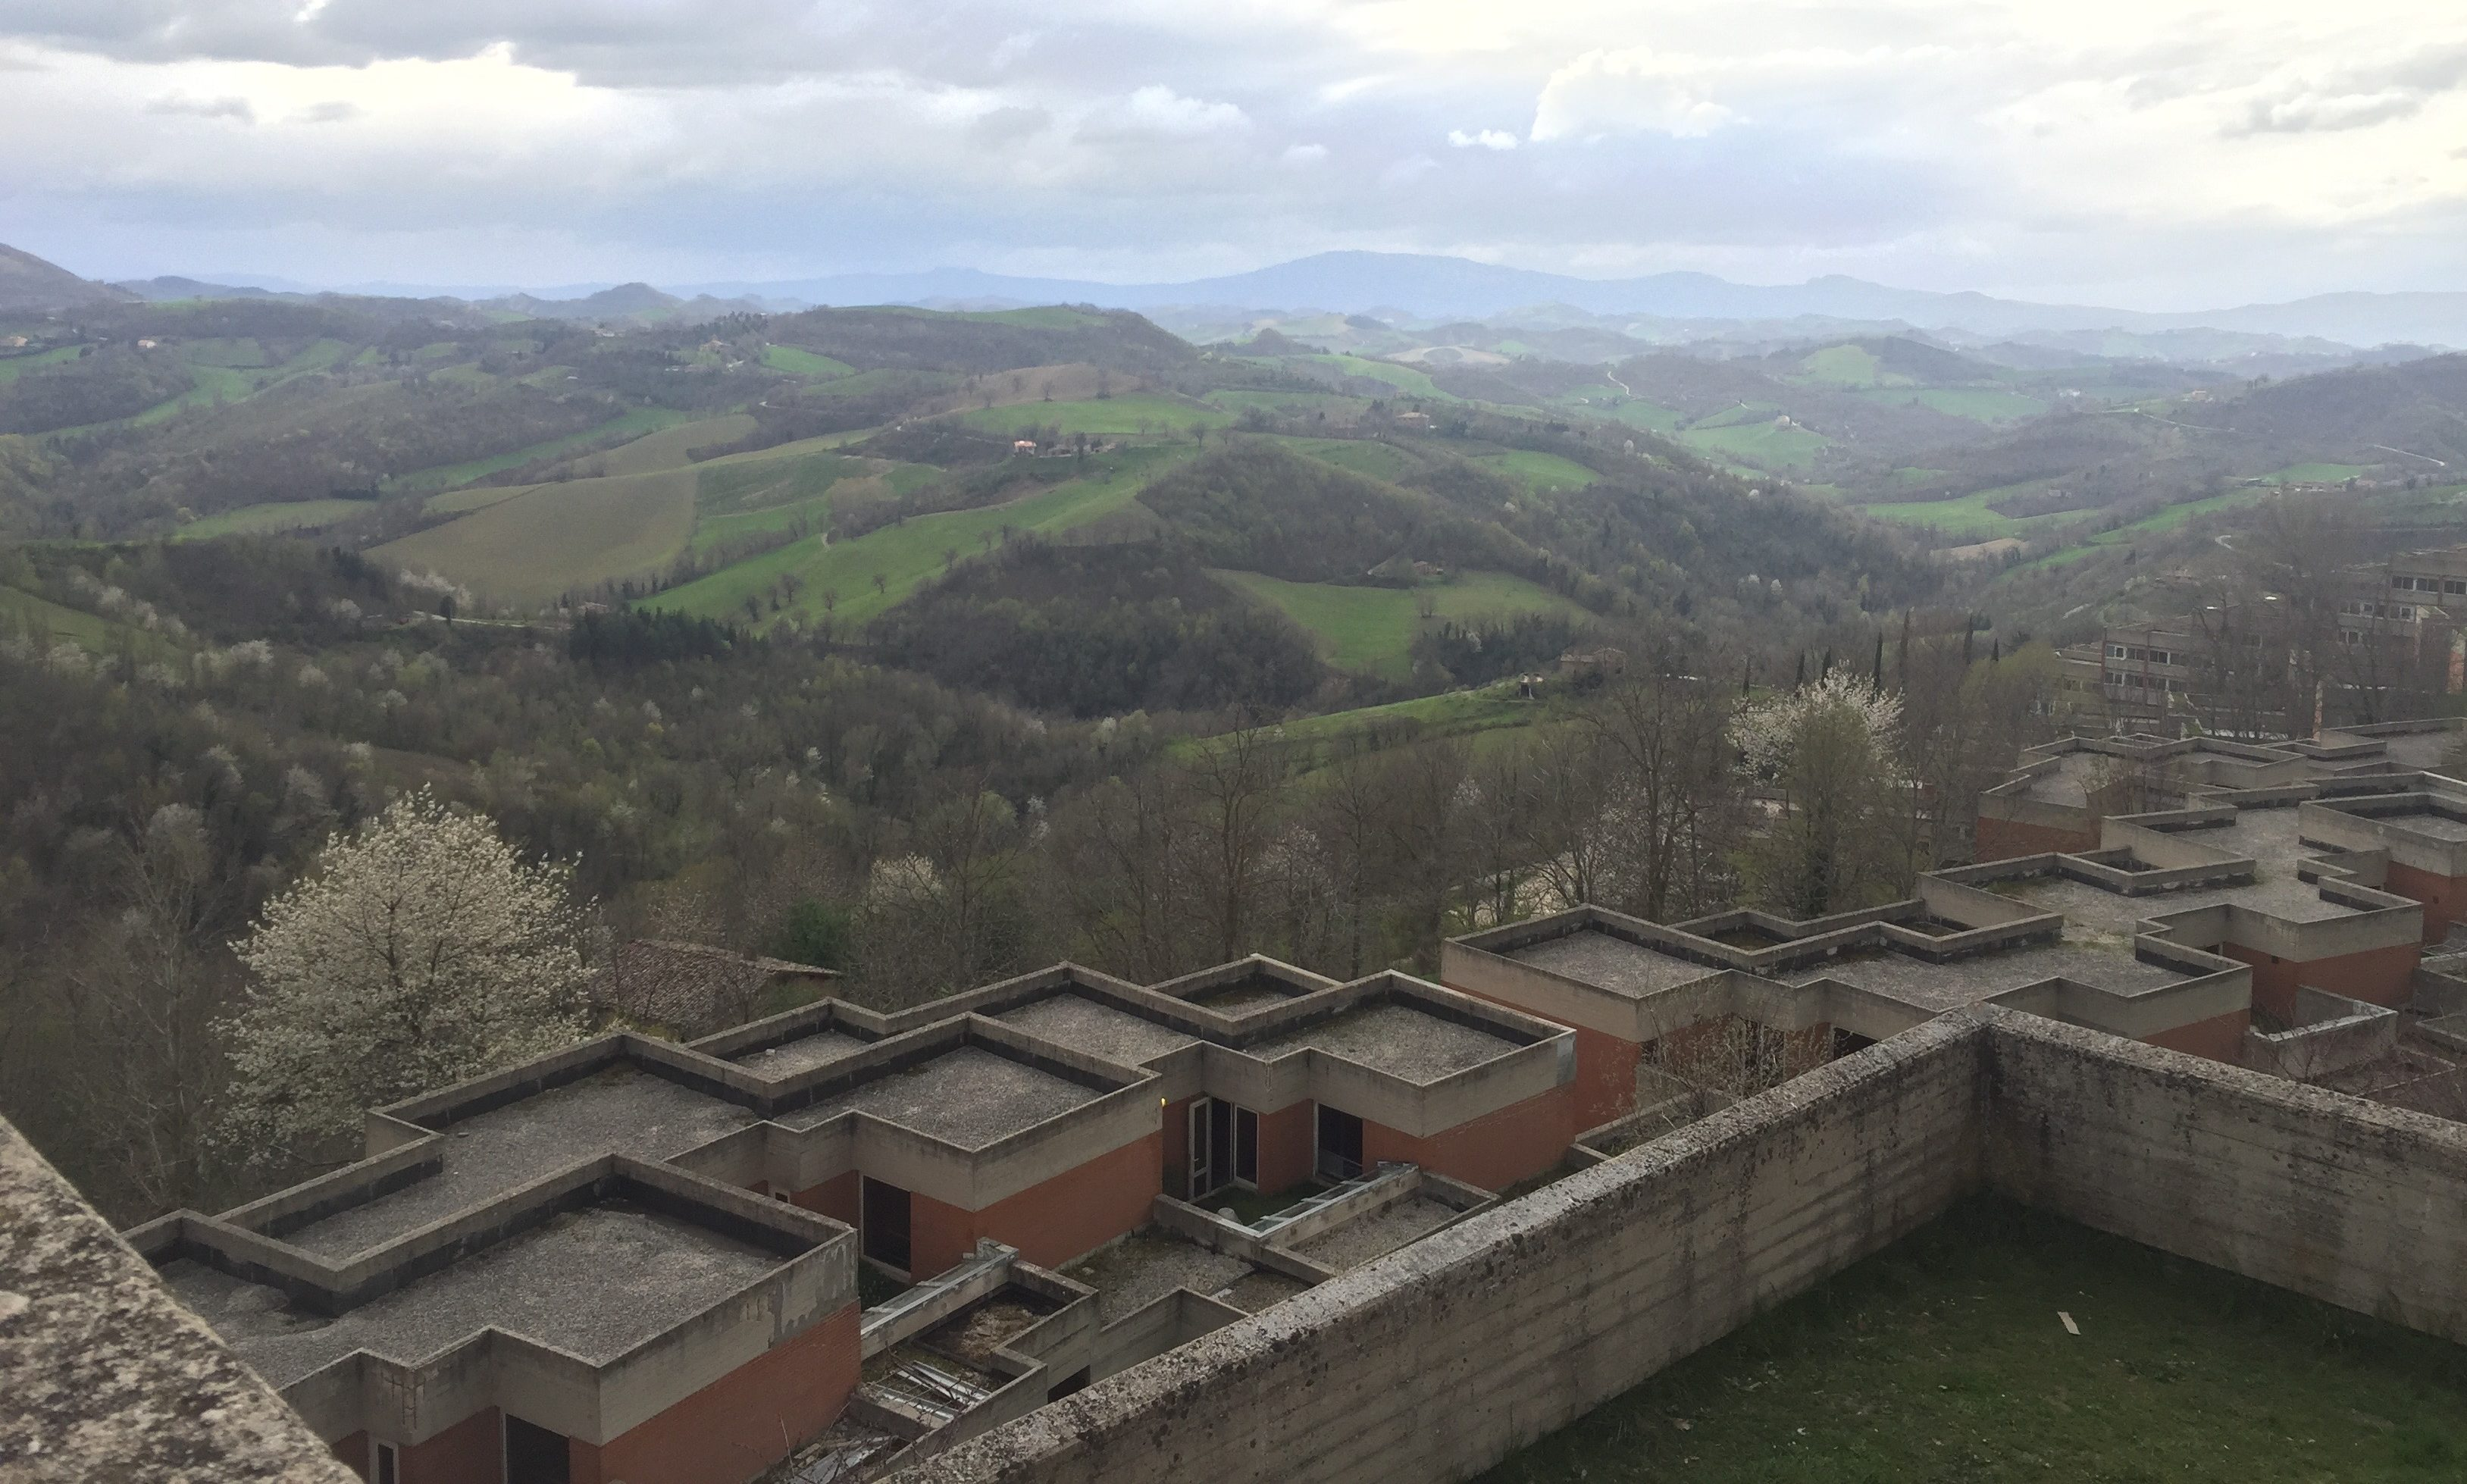 View from the roof of Aquilone